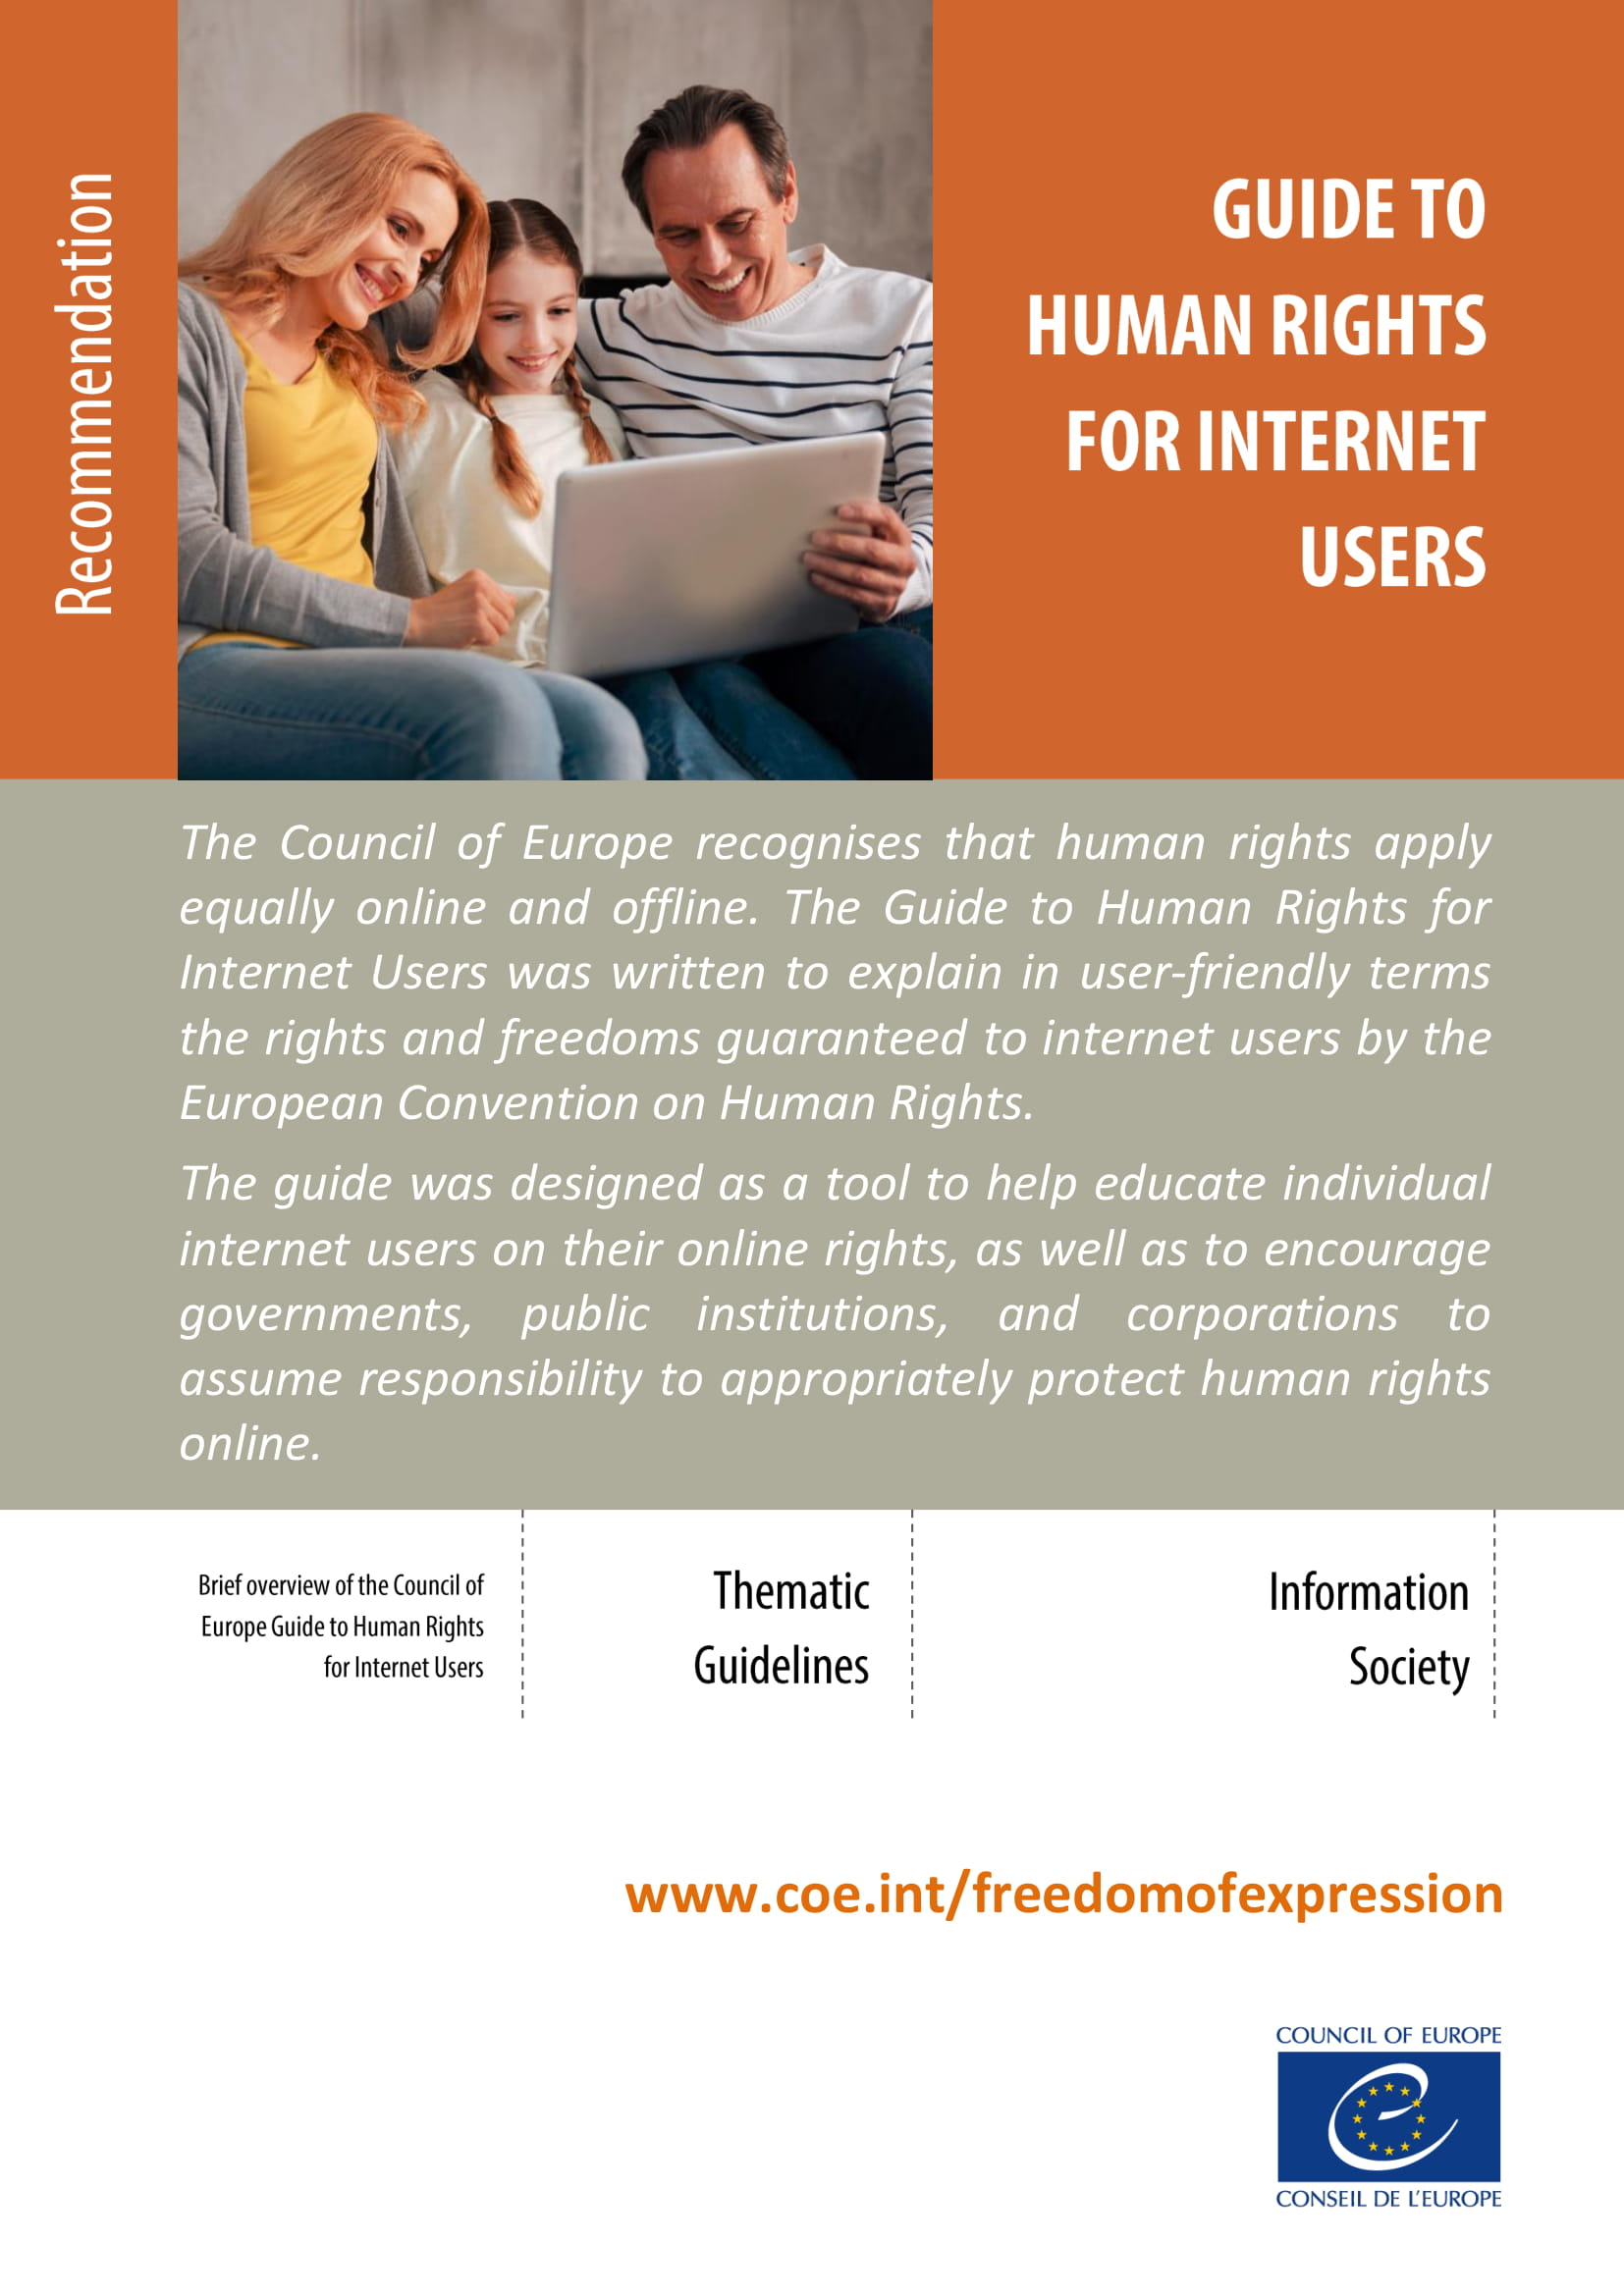 Guide to Human Rights for Internet Users